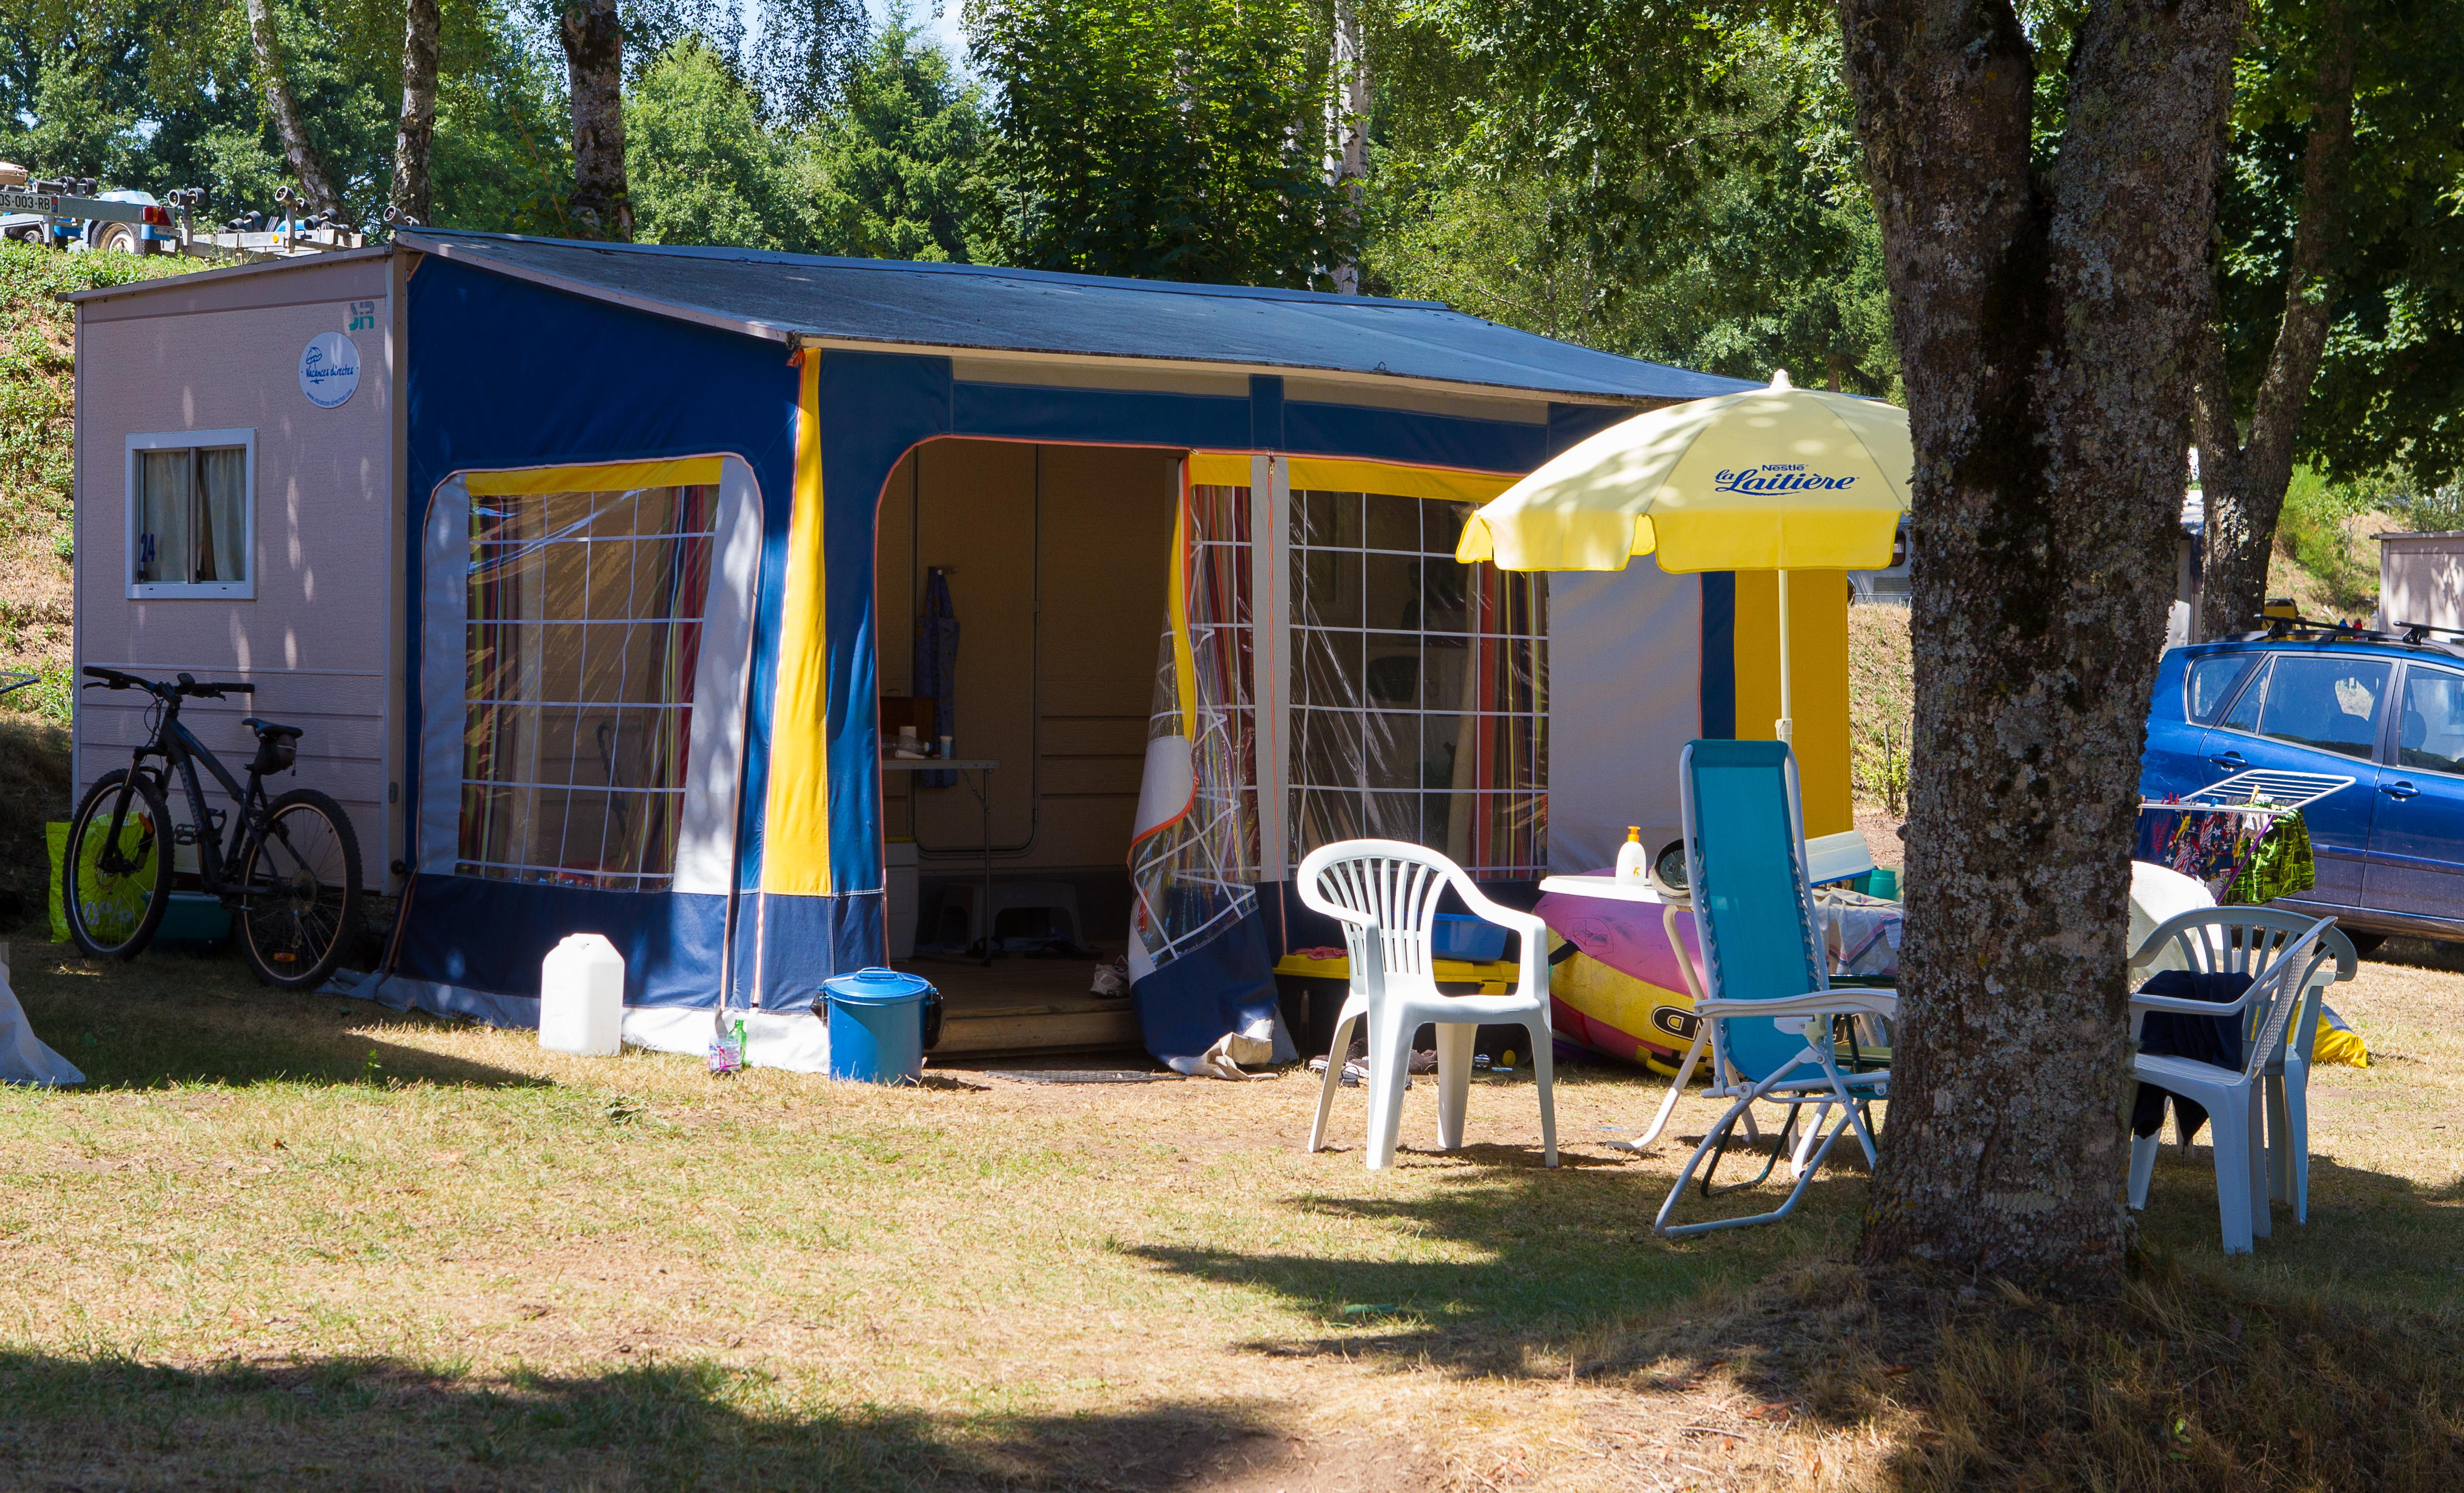 Caravan Tracinelle 11M2 Without Sanitary Equipments, Arrival Day At Sunday In The High Season